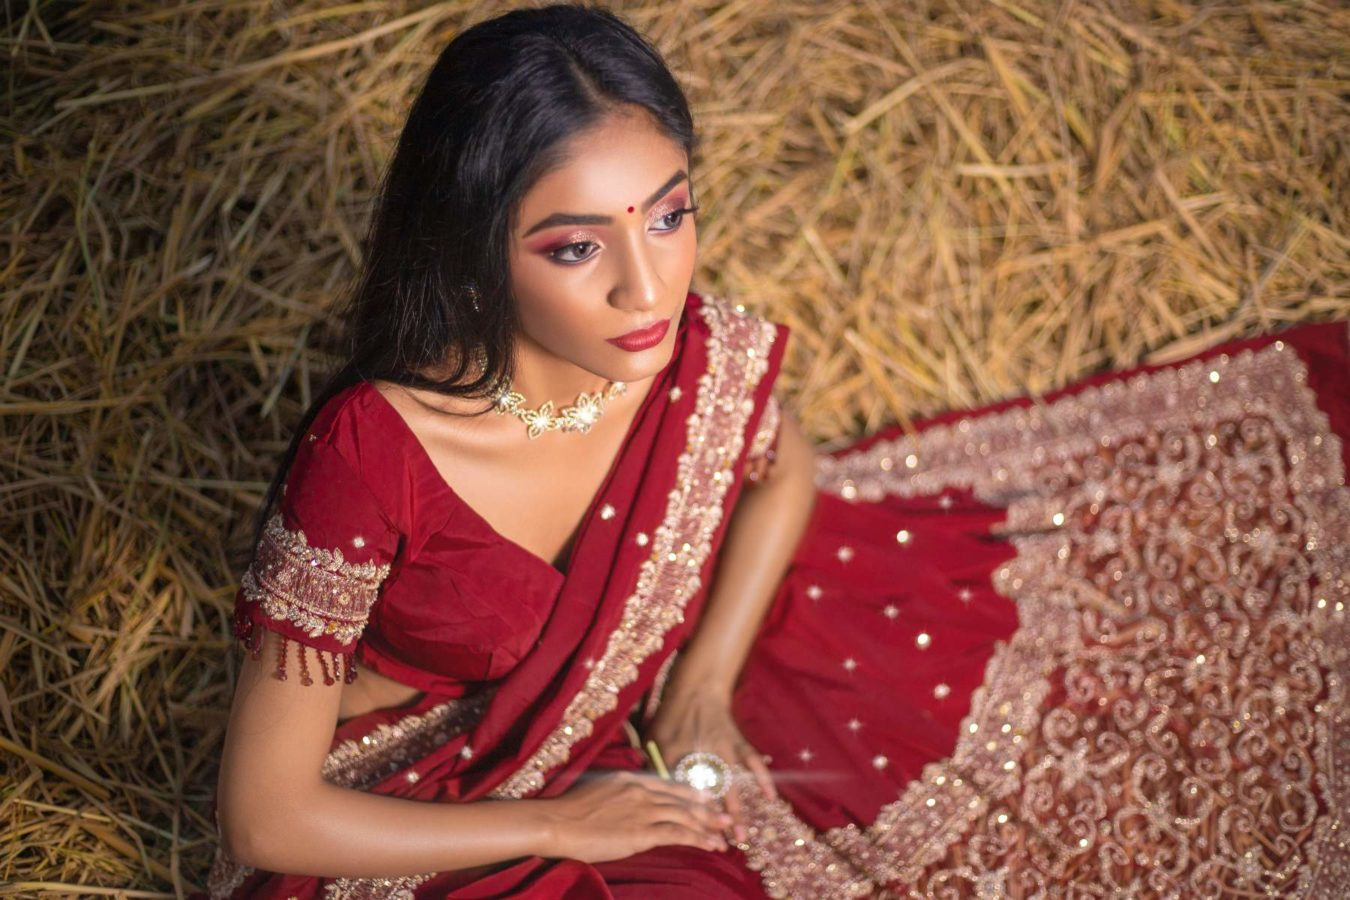 Master your sari draping skills with these handy tutorials